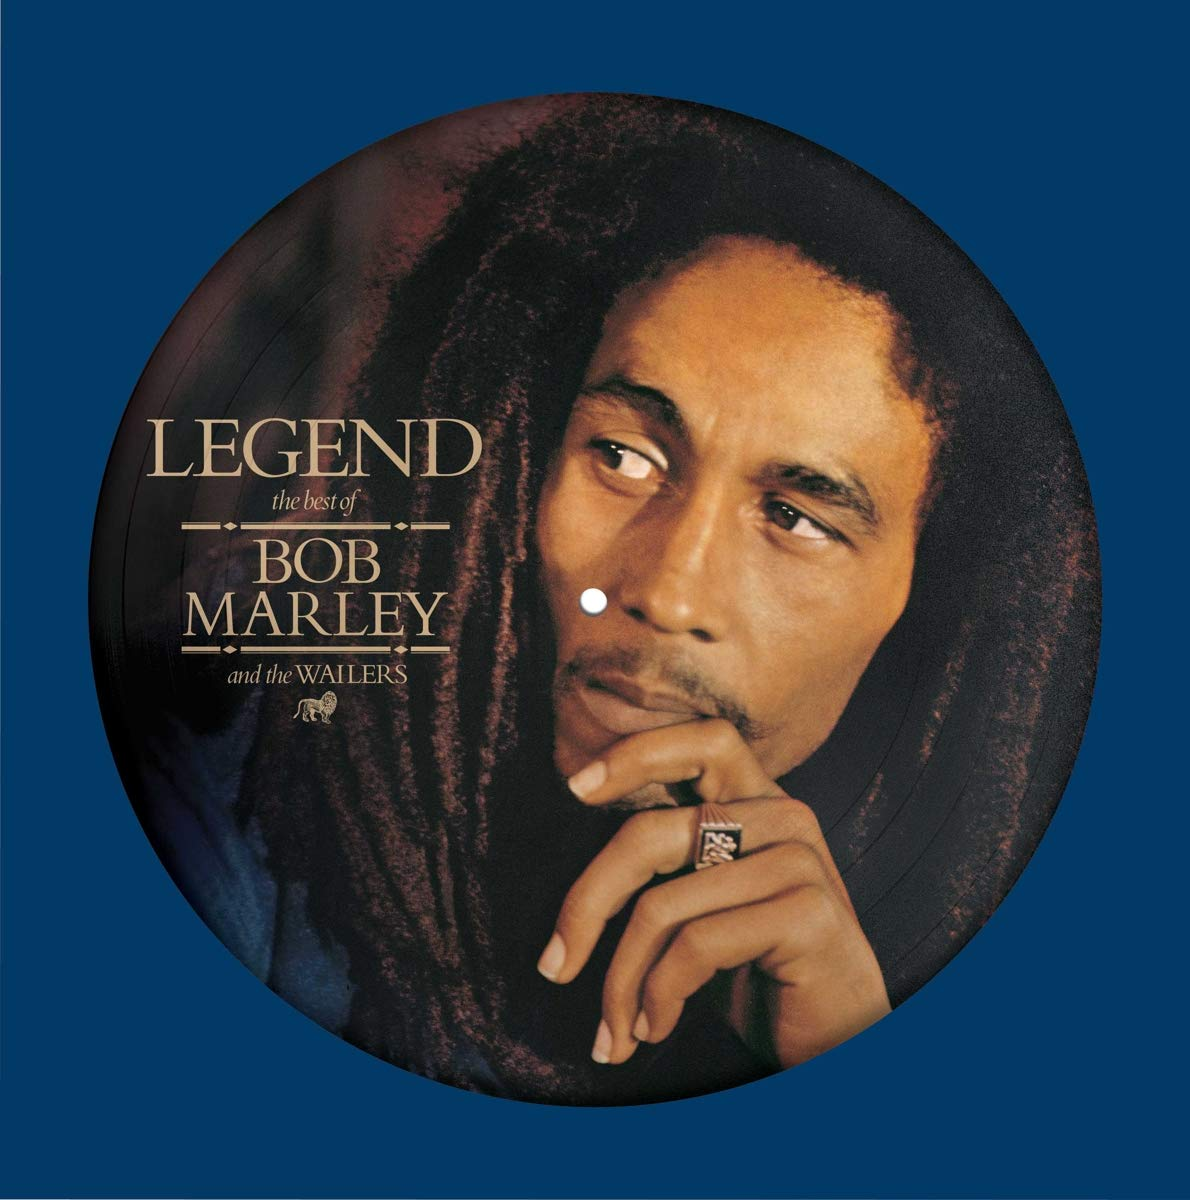 BOB MARLEY – Legend – Limitied Picture Disc [JULY 24th]